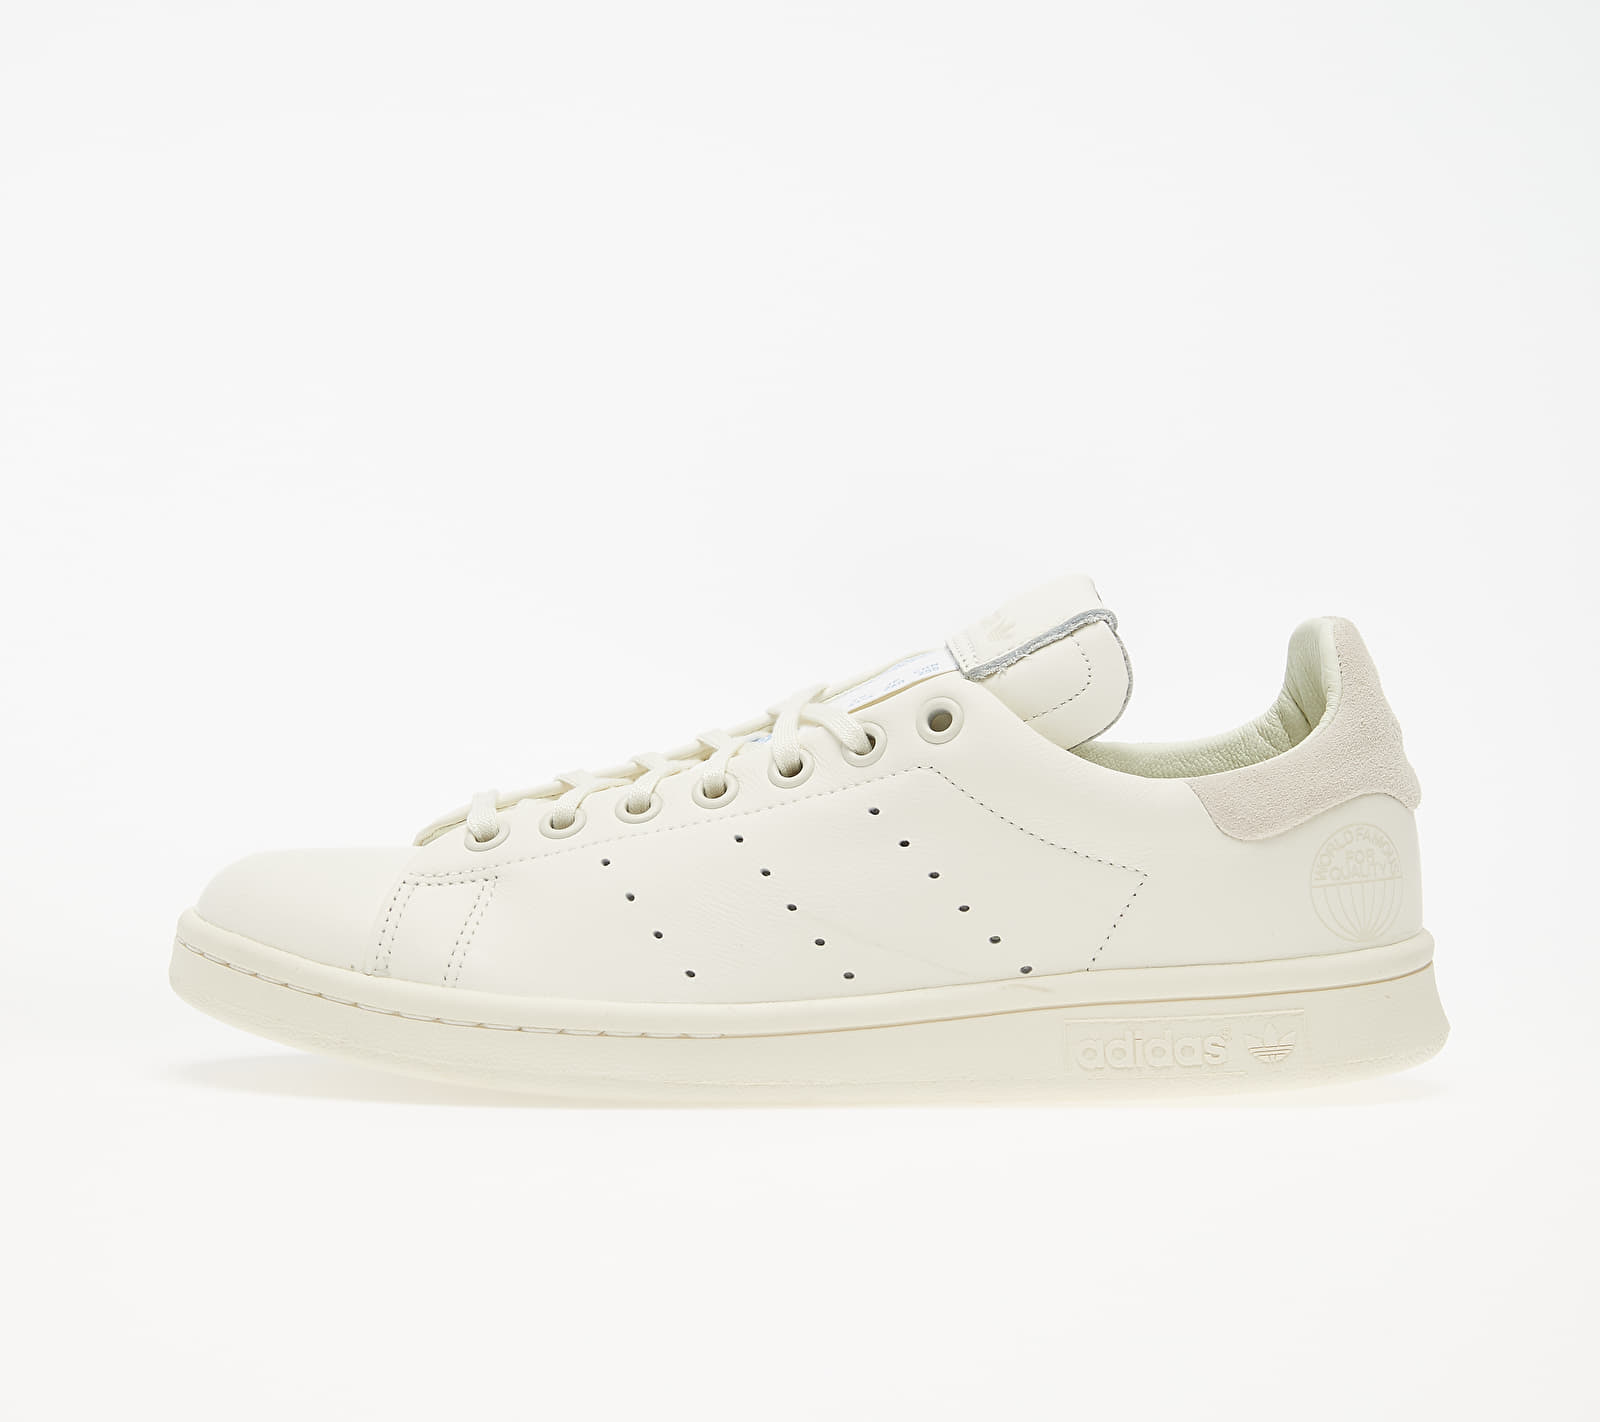 adidas Stan Smith Recon Off White/ Off White/ Off White EUR 38 2/3